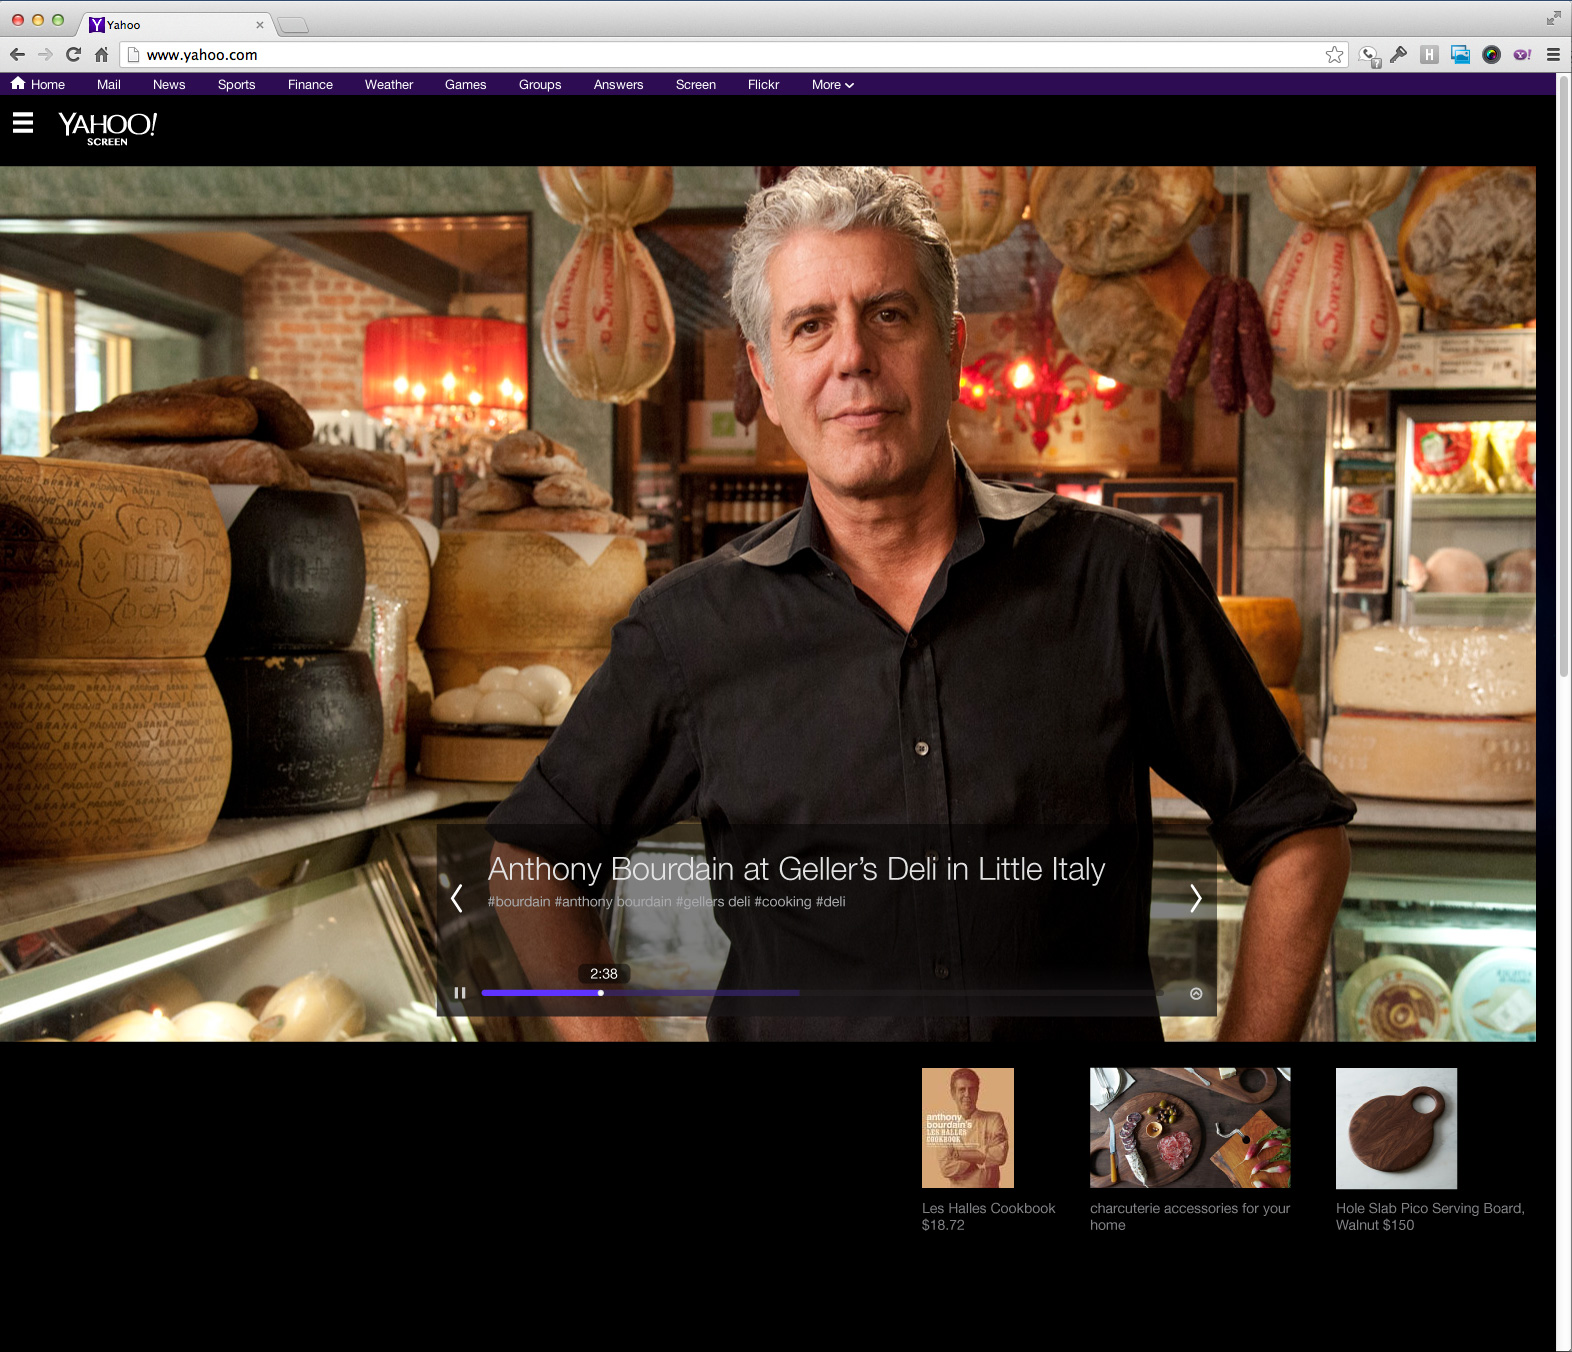 FULL_SCREEN_bourdain.jpg